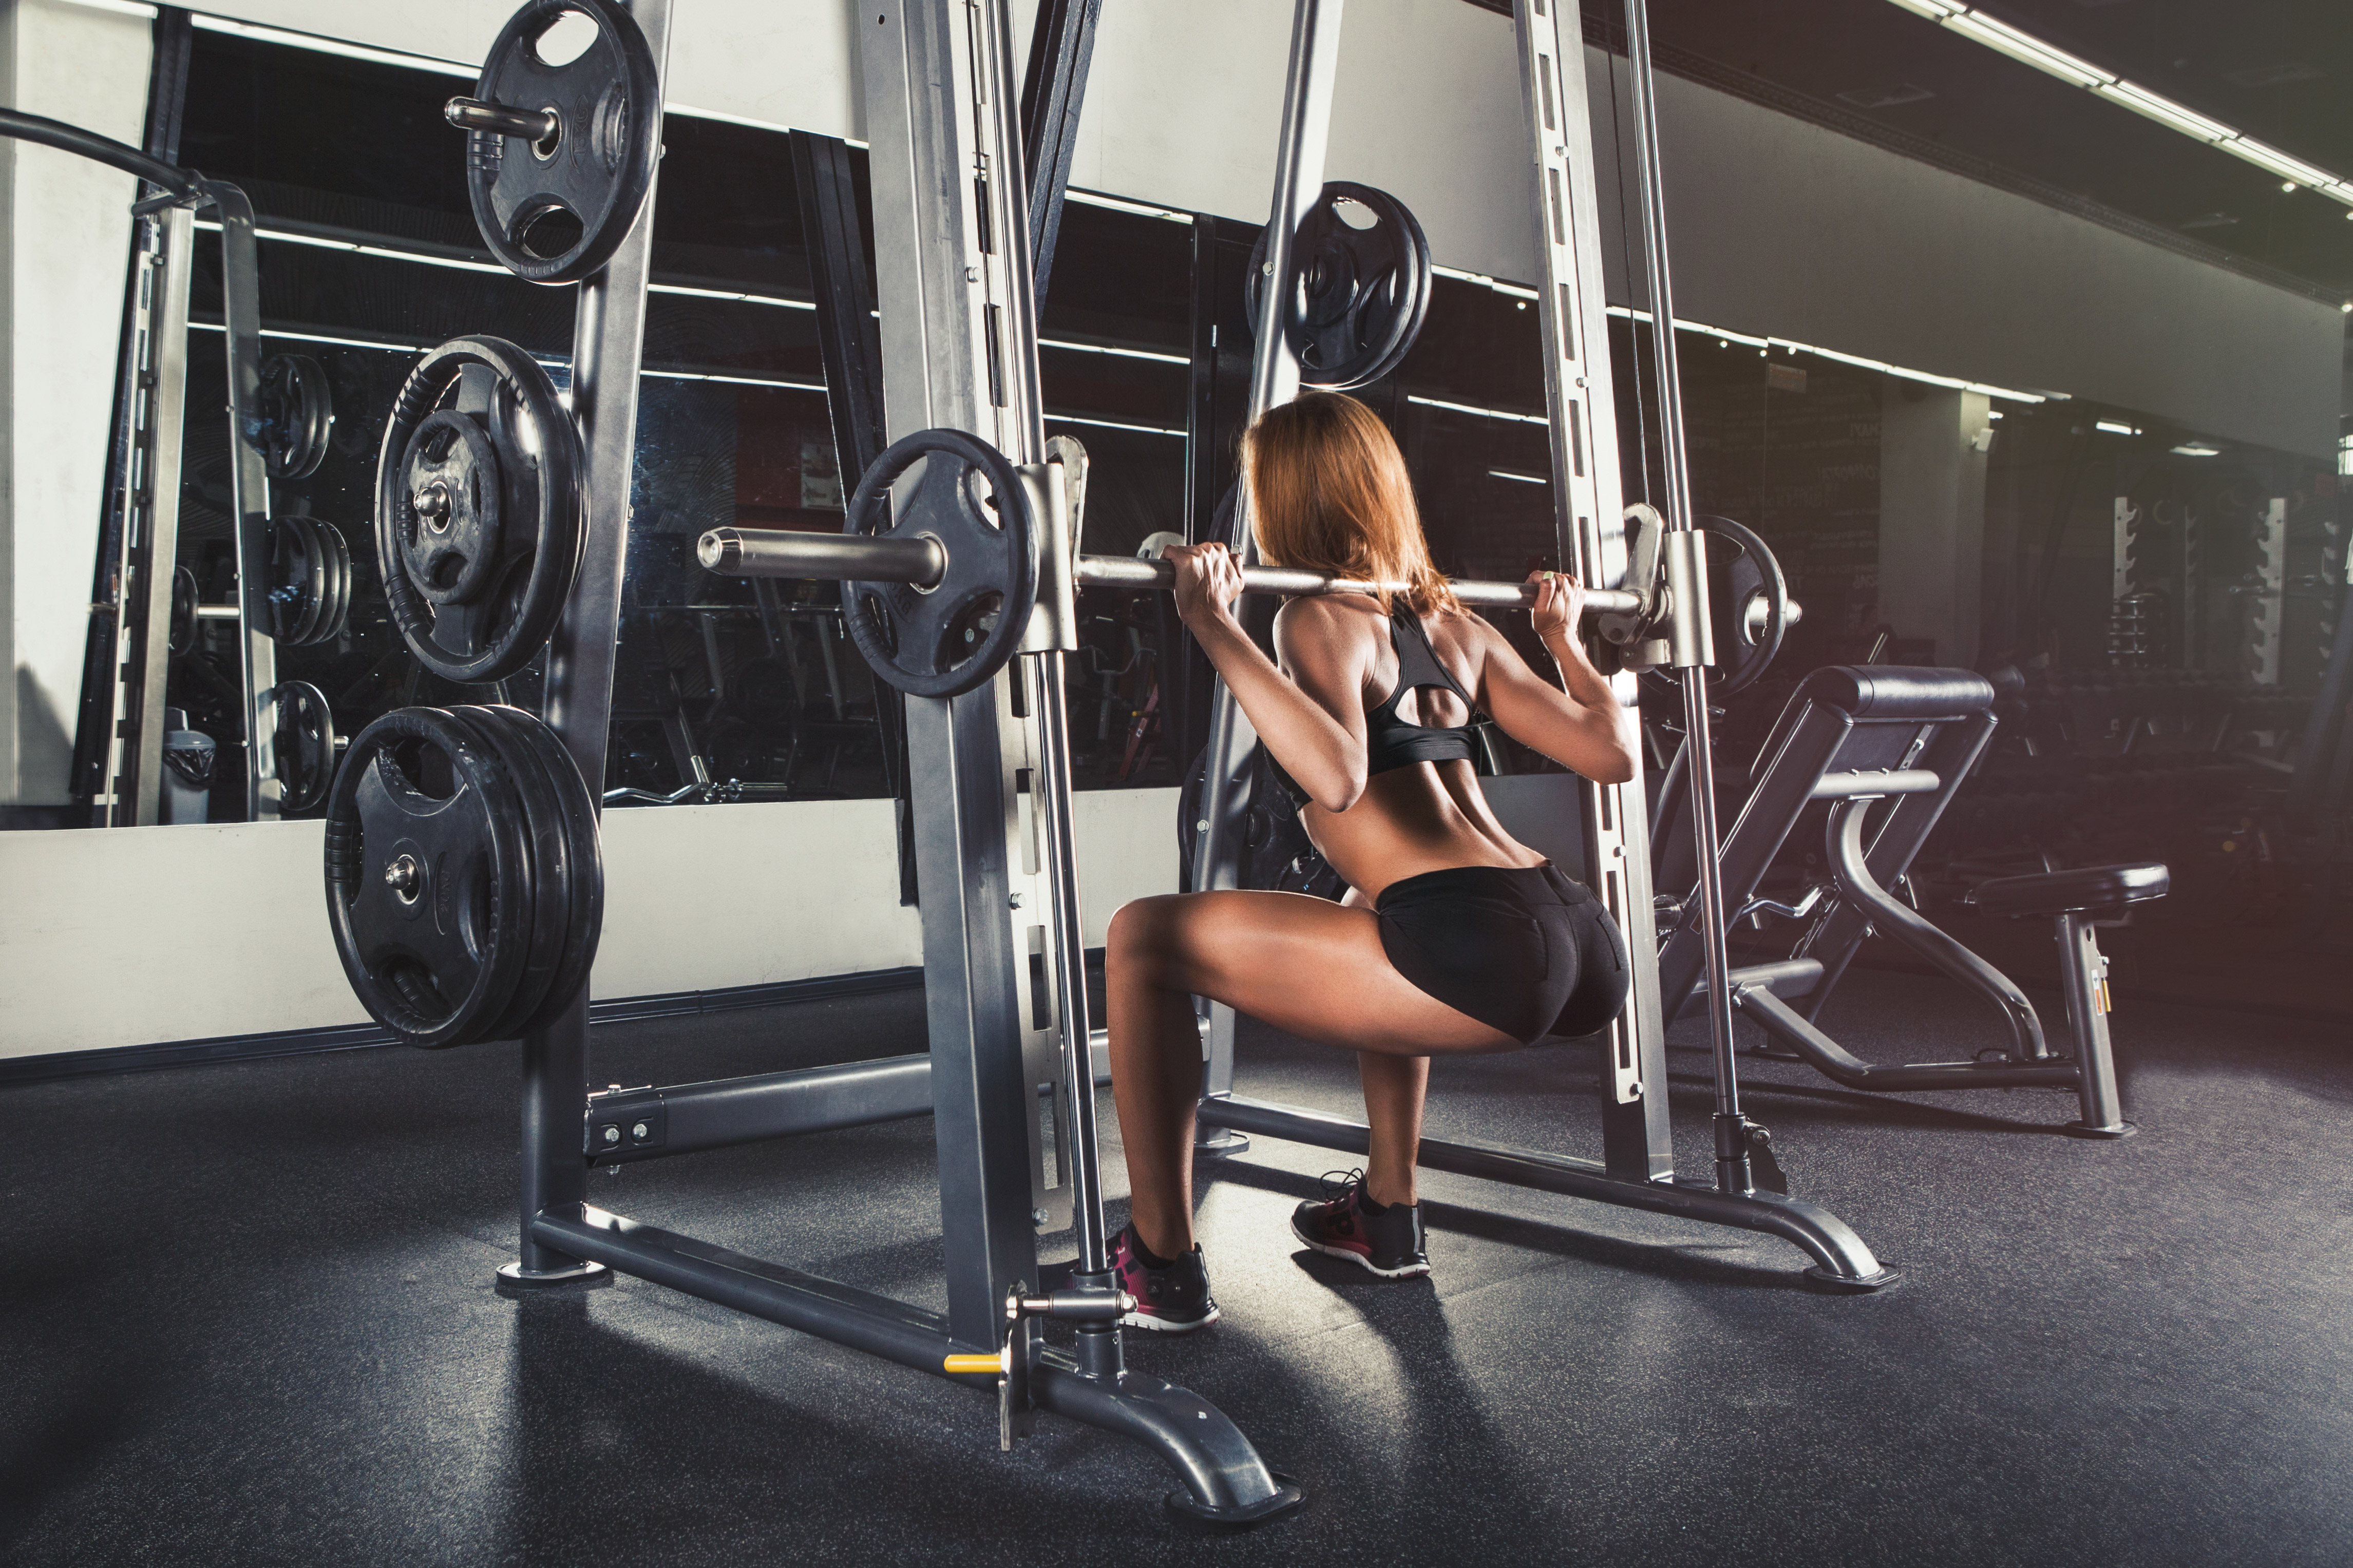 Workout for women: Tips to get your X shape